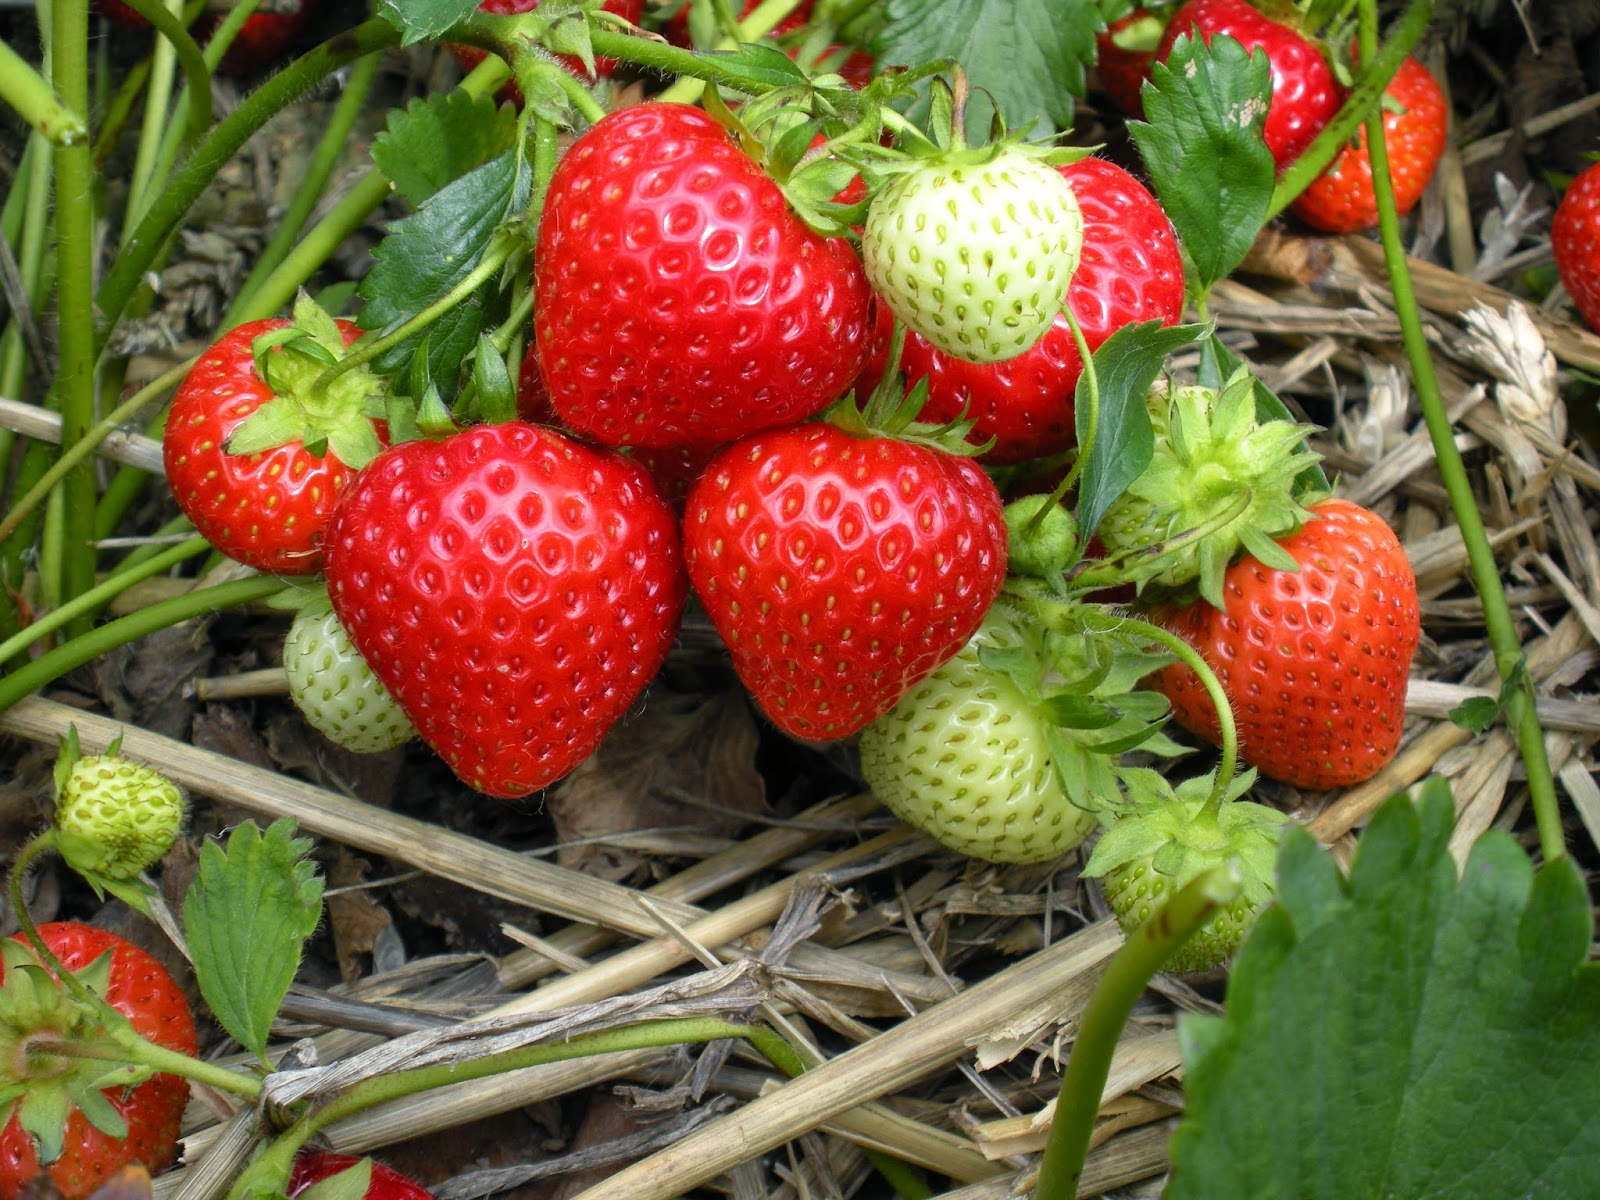 HOW TO TAKE CUTTINGS FROM STRAWBERRY PLANTS |The Garden of Eaden